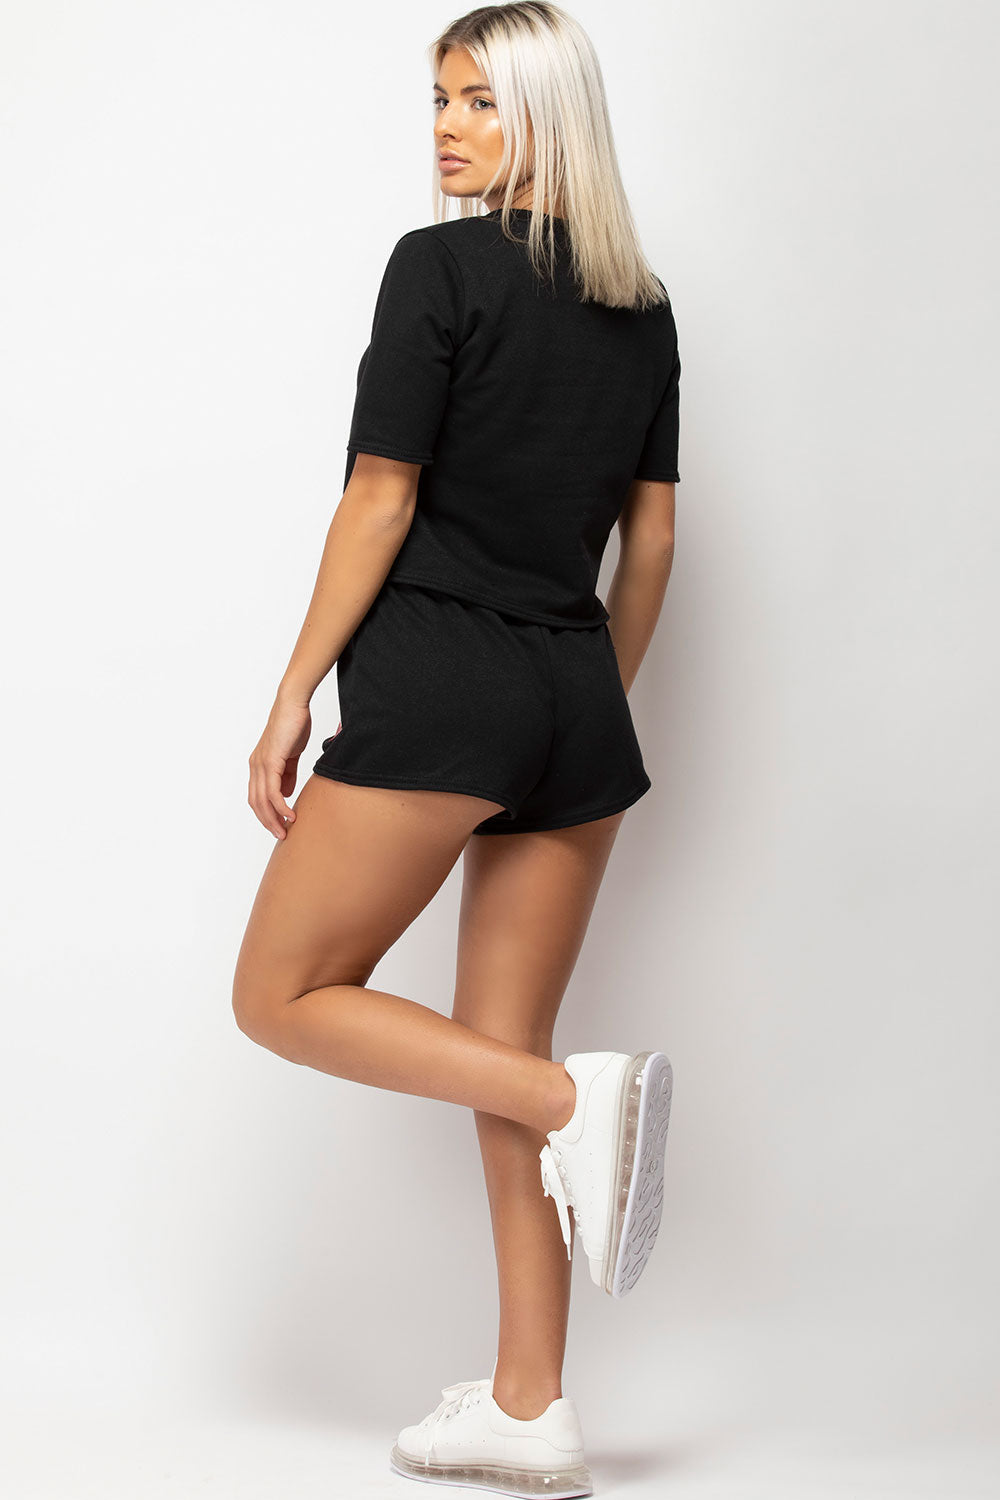 crop top and shorts co ord set